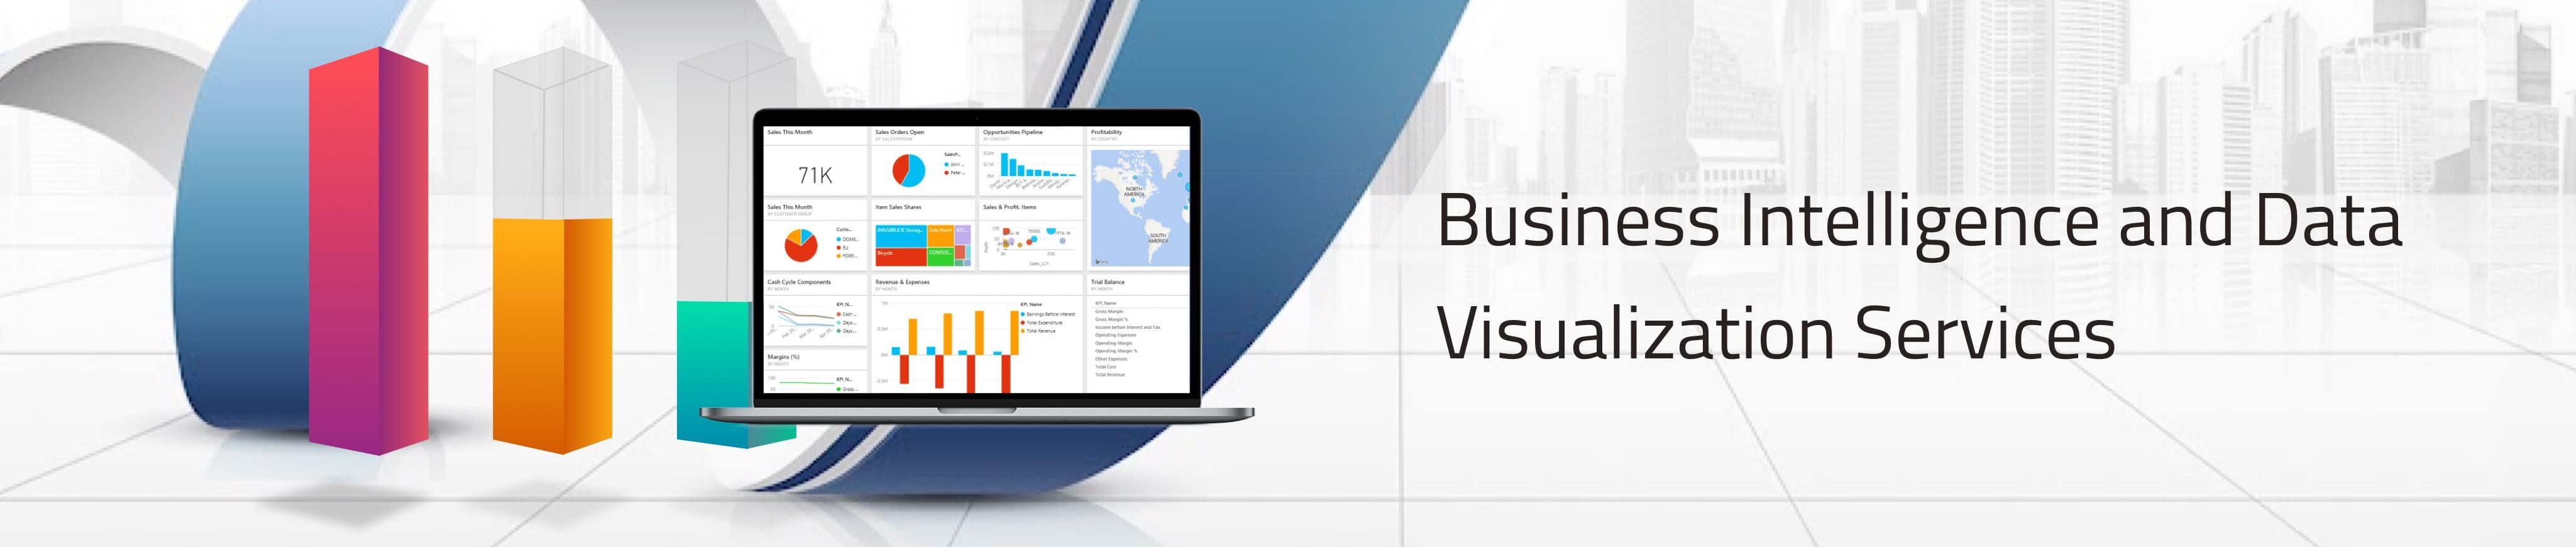 Business Intelligence and Data Visualization Services